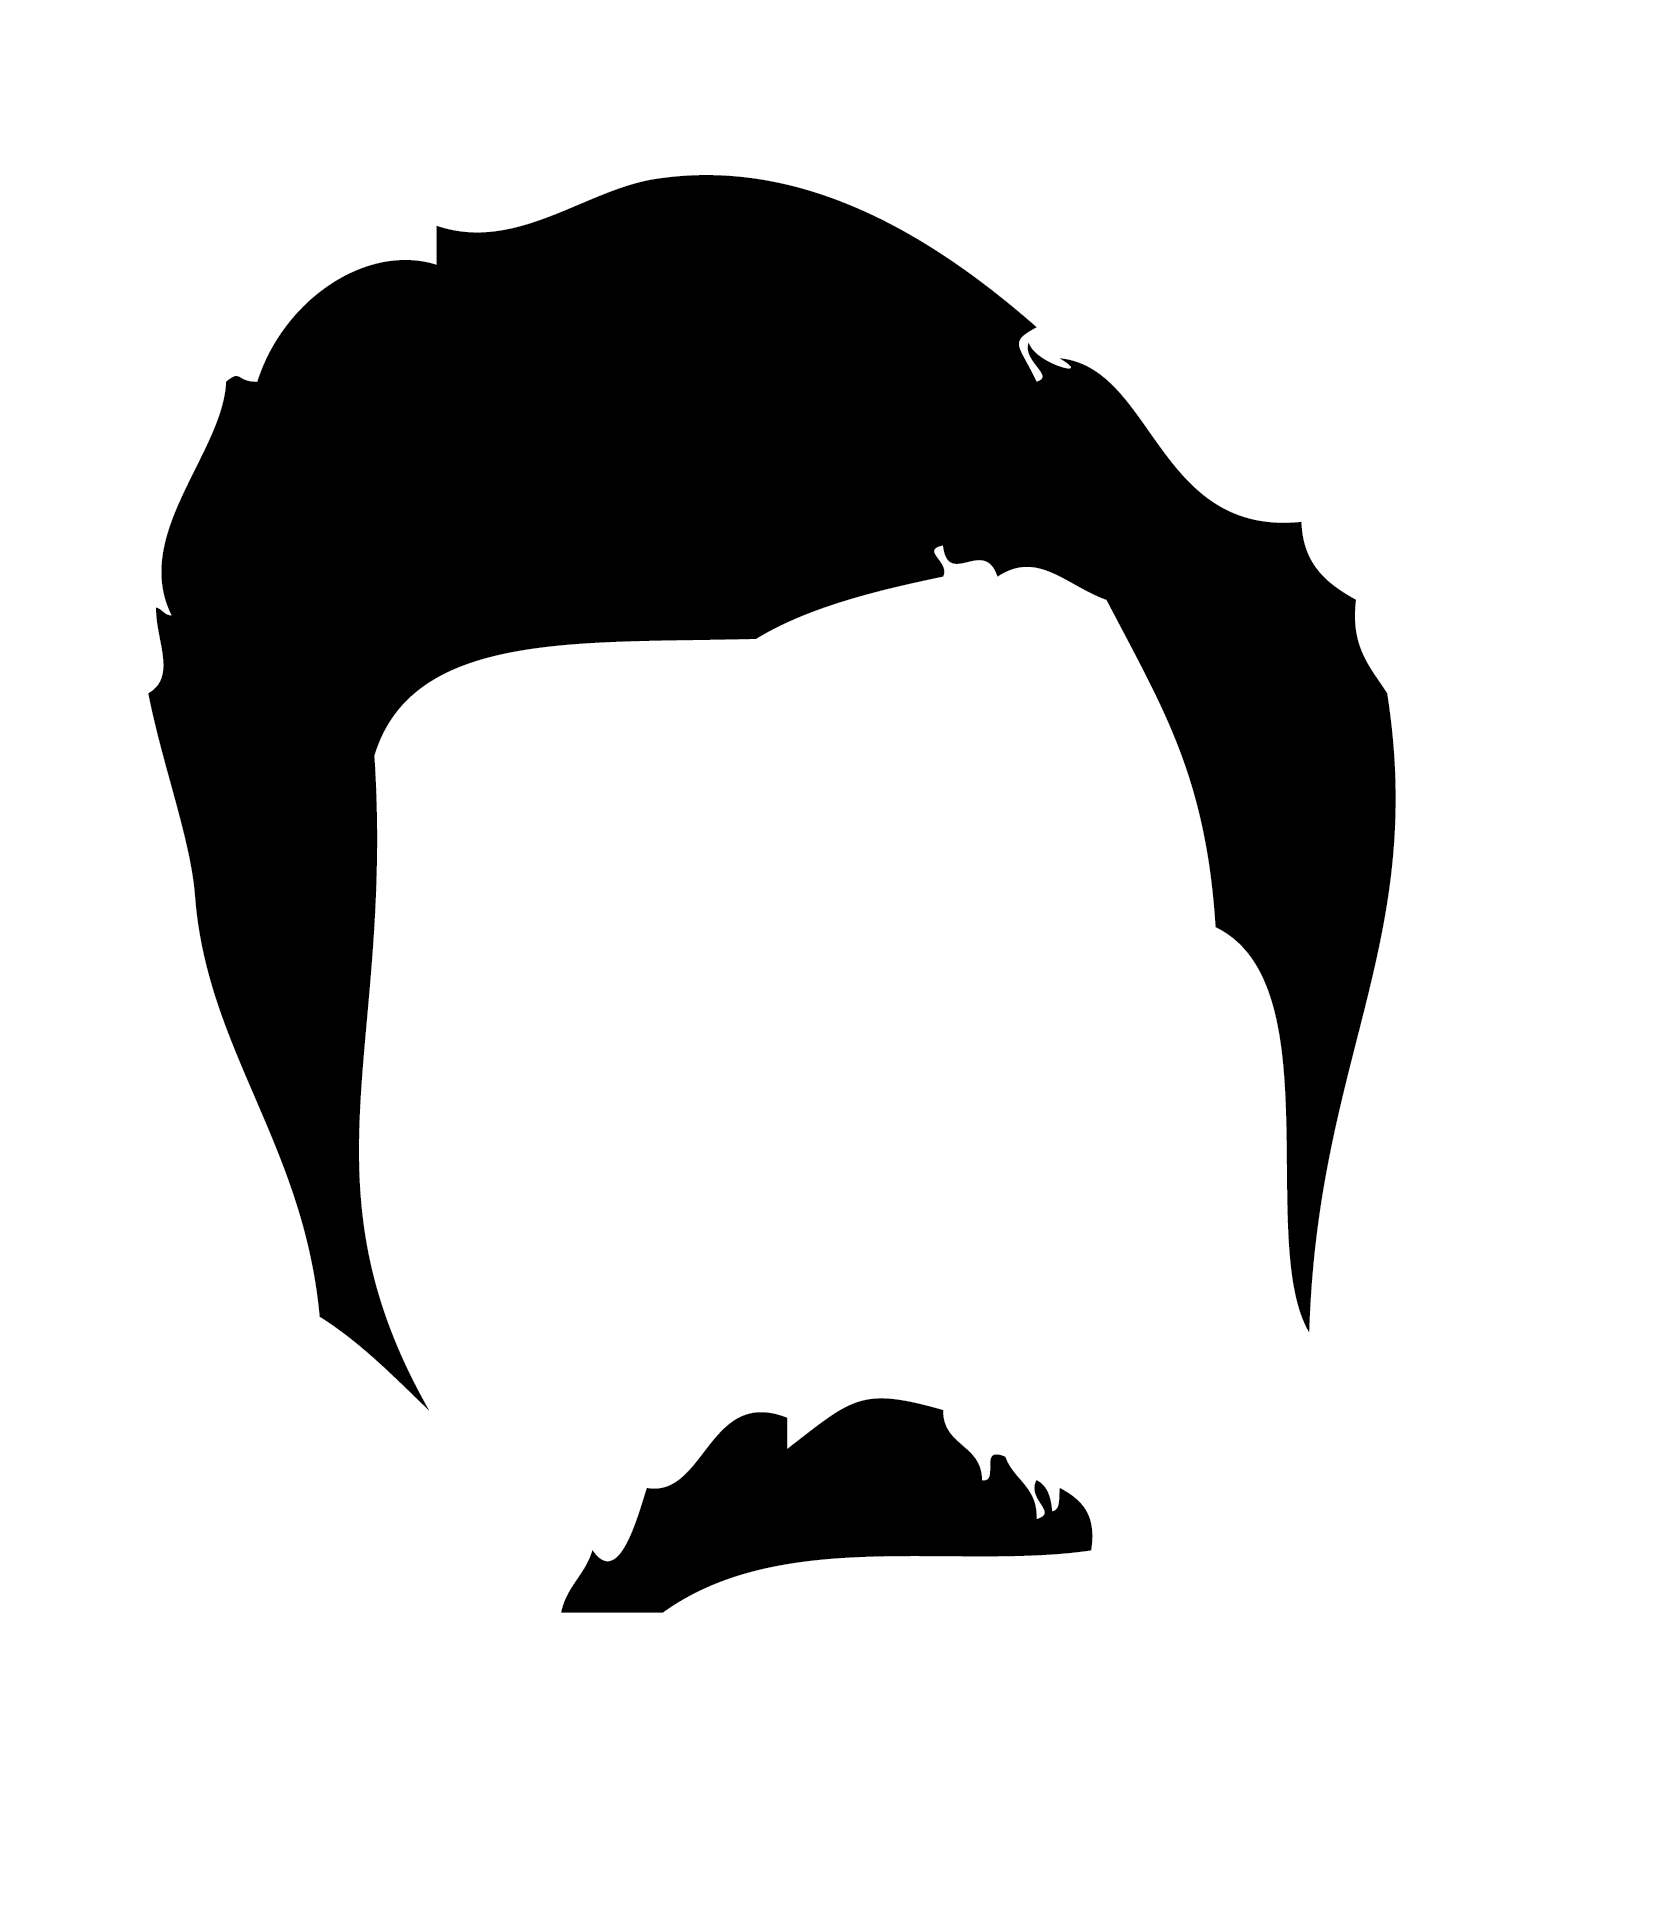 Ron letters stickers clipart graphic freeuse library Ron Swanson | Cricut Projects | Ron swanson, Cricut, Stencil ... graphic freeuse library